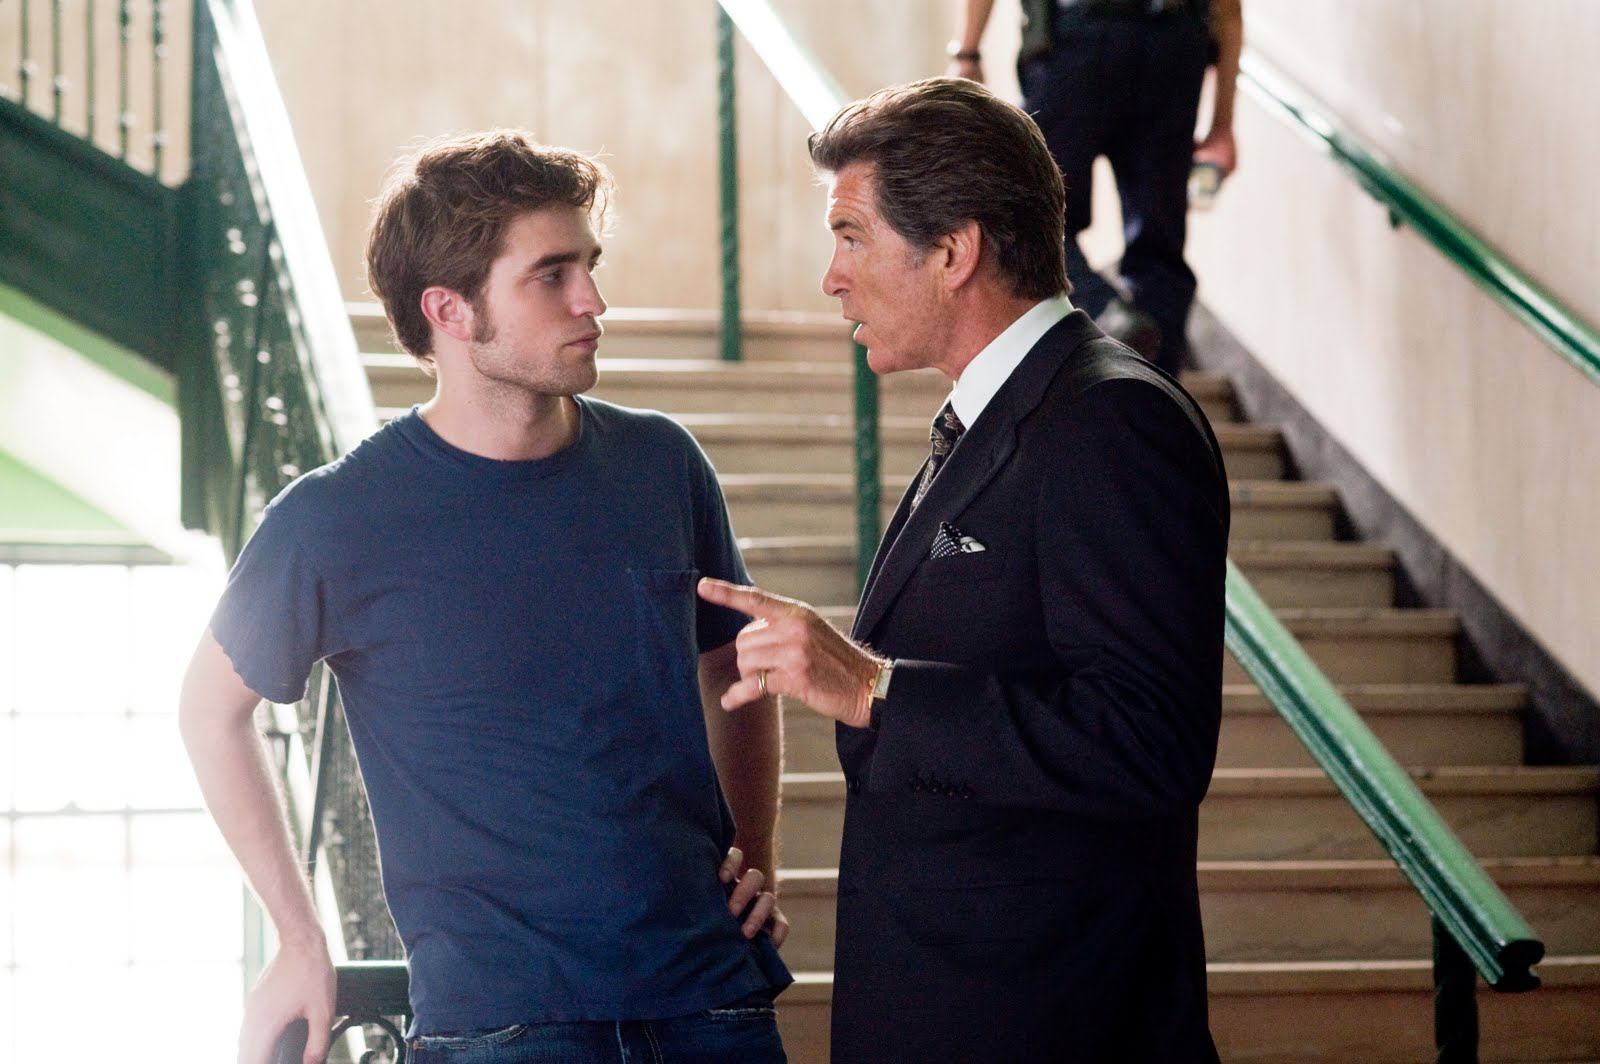 Robert Pattinson and Pierce Brosnan will be stripped for auction 03/12/2010 8